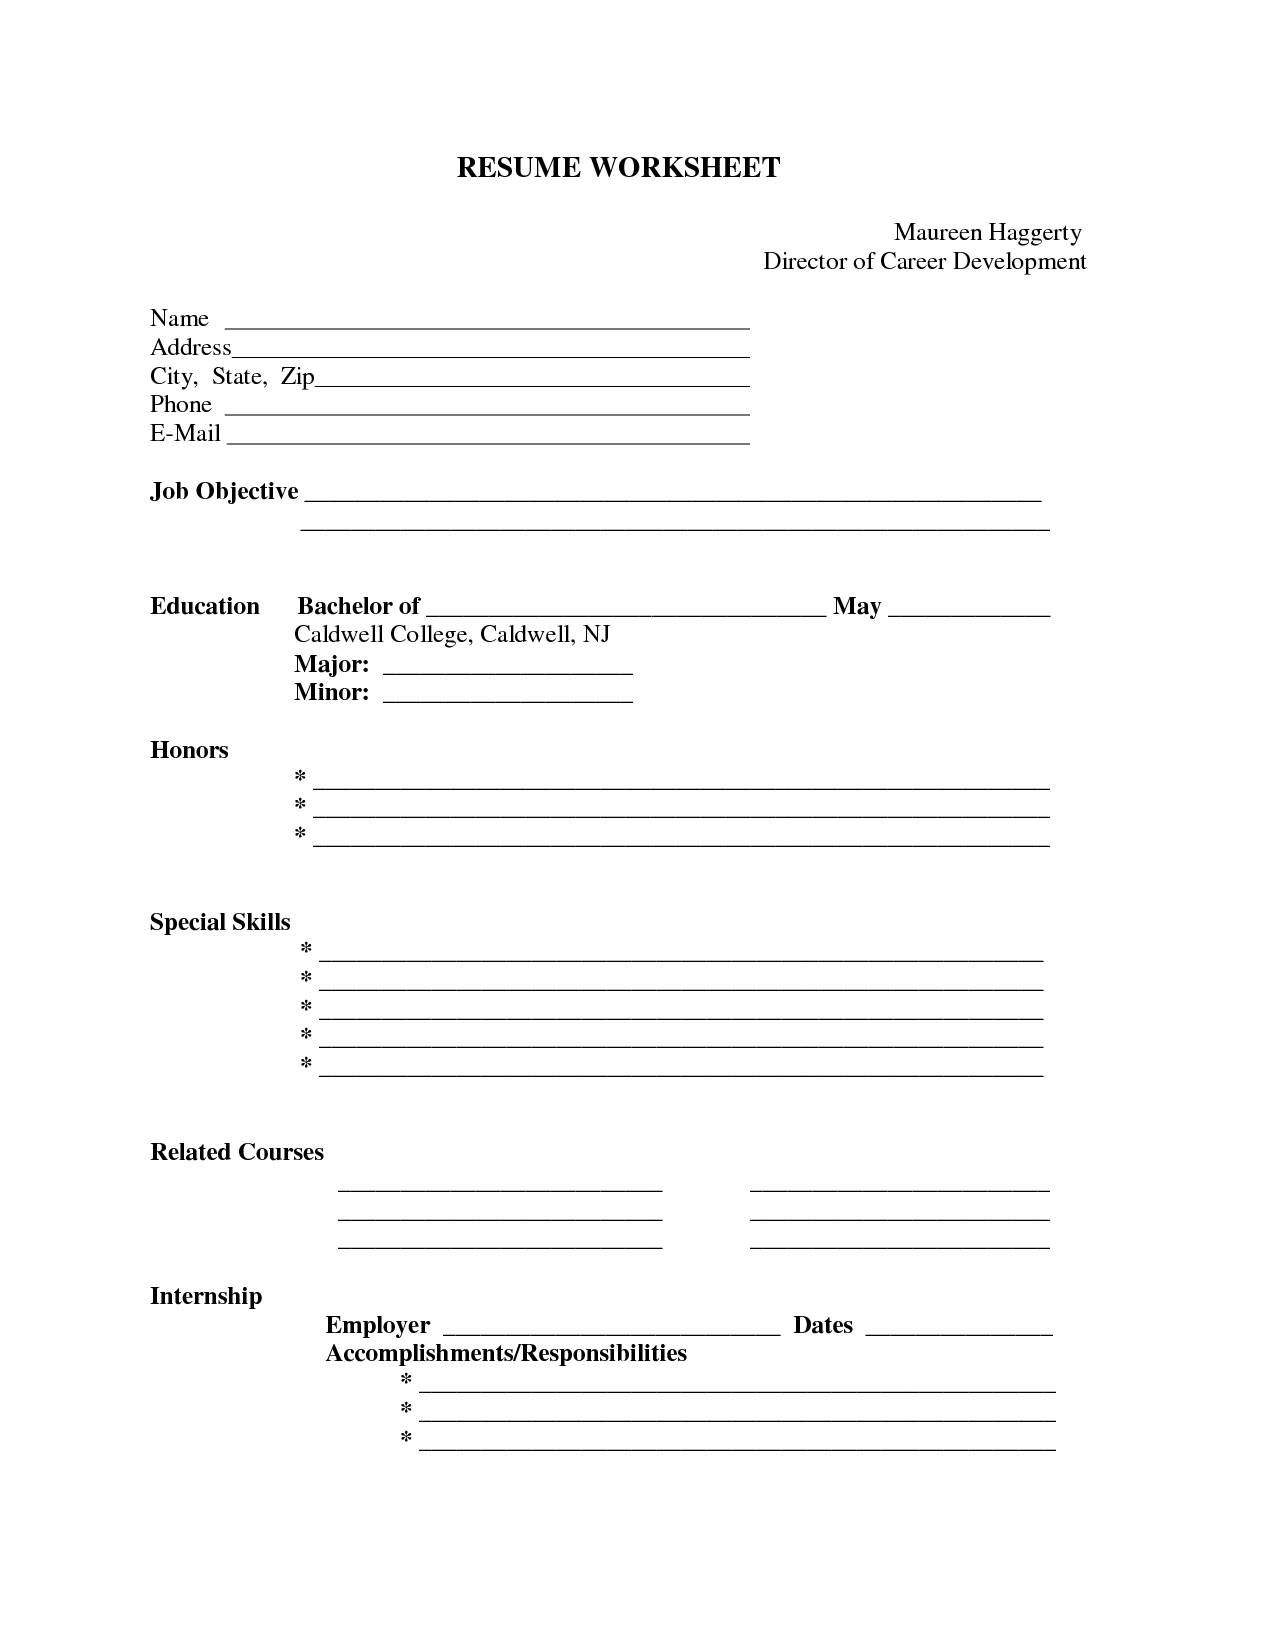 Free printable blank resume forms httpresumecareerfo free resume builder for high school students templates and print online maker template student blank ideas example yelopaper Choice Image